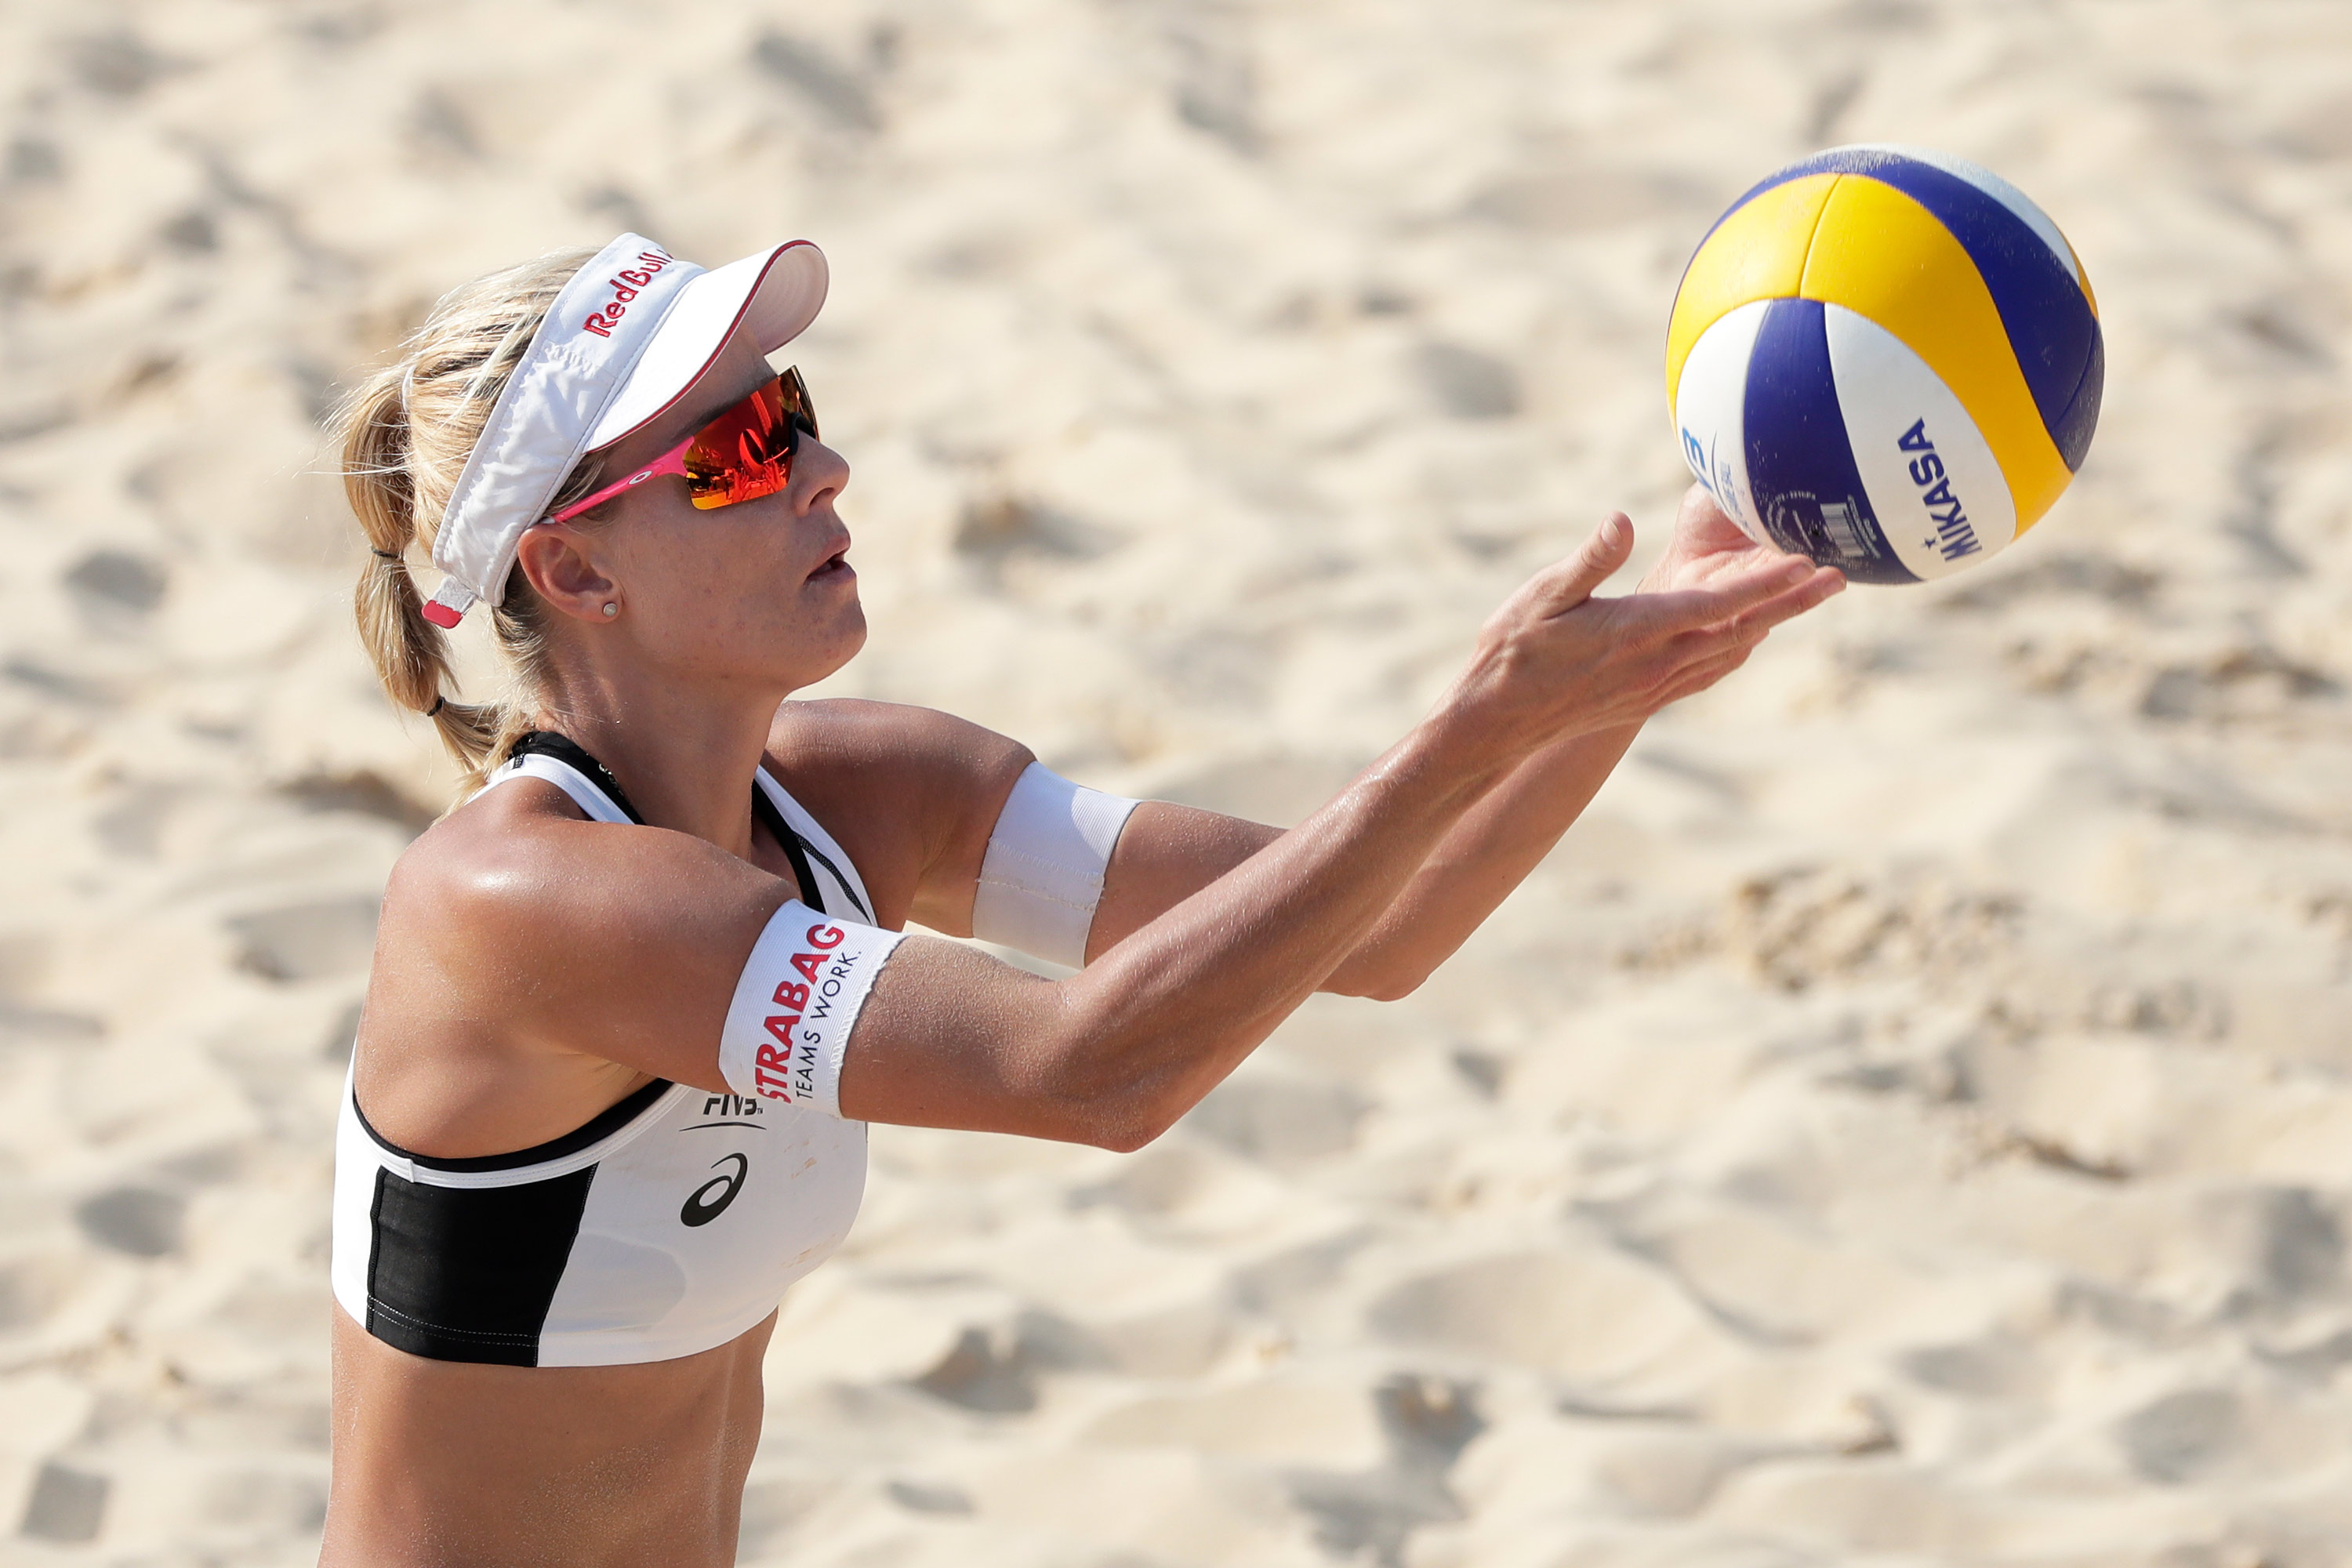 MarkétaSluková-Nausch of the Czech Republic prepares to serve in the FIVB Beach Volleyball World Tour Tokyo at Shiokaze Park on July 25, 2019, in Tokyo, Japan.